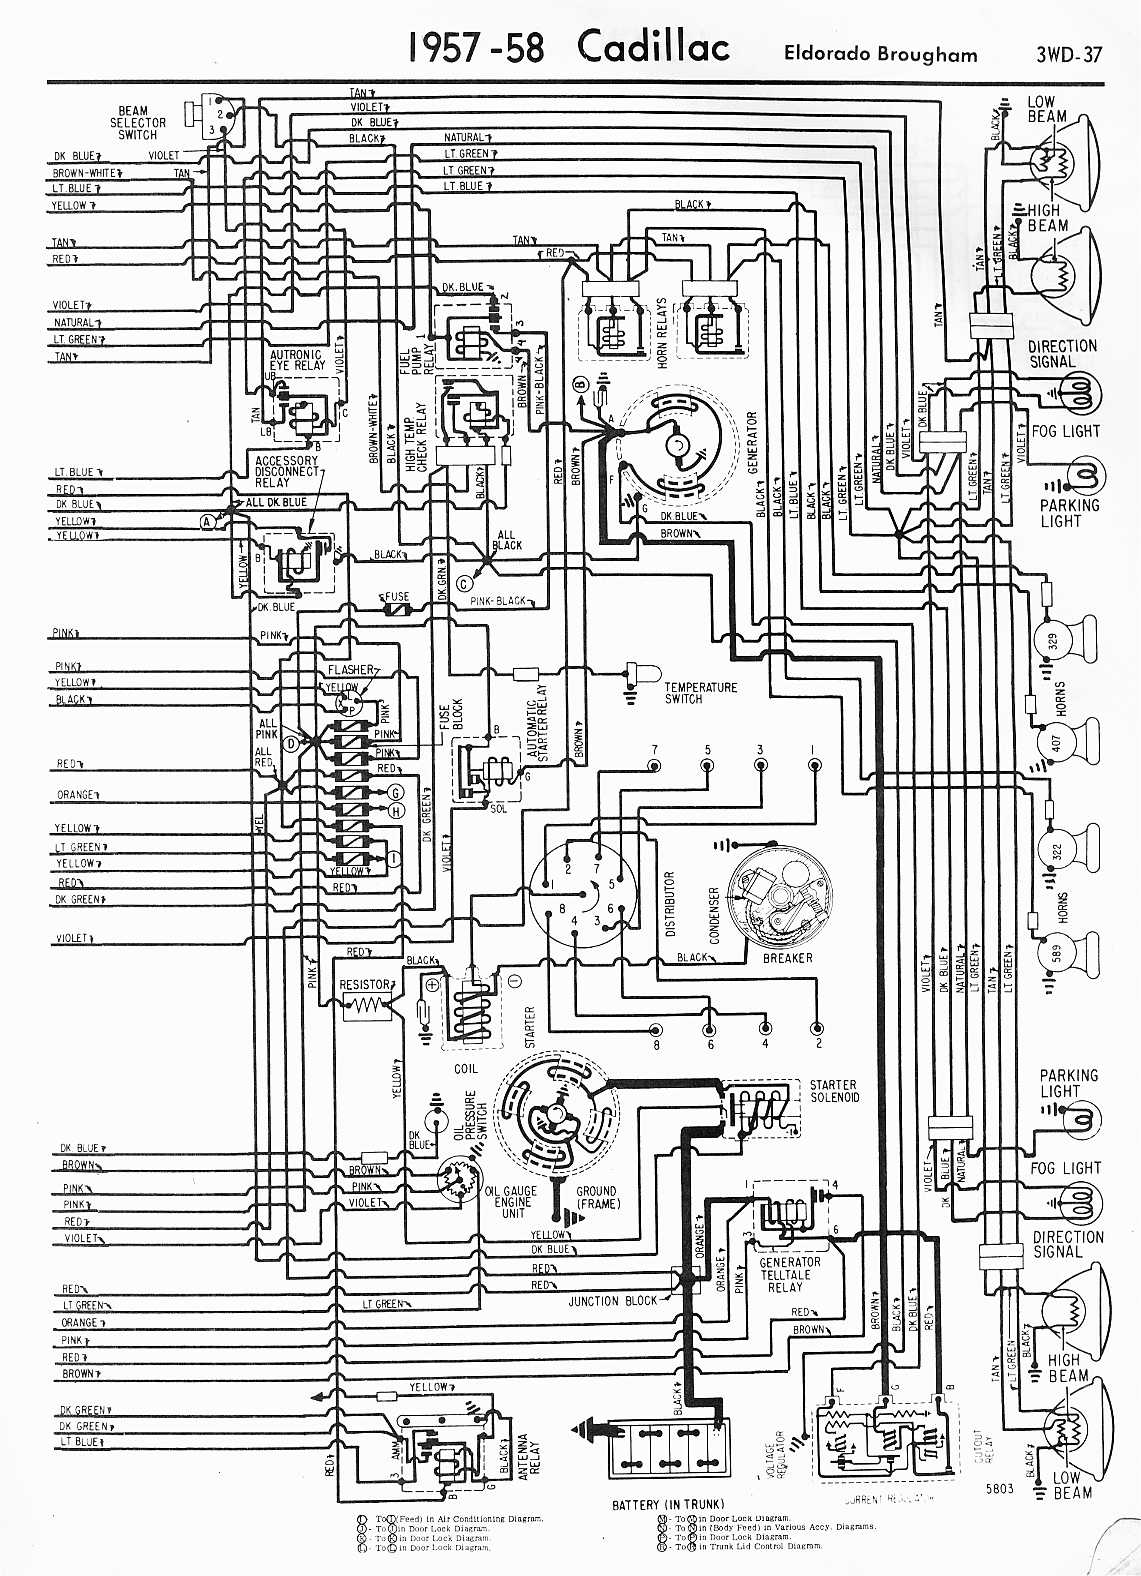 MWireCadi65_3WD 037 cadillac wiring diagrams 1957 1965 2000 Cadillac Escalade Radio Comes On and Off at gsmx.co